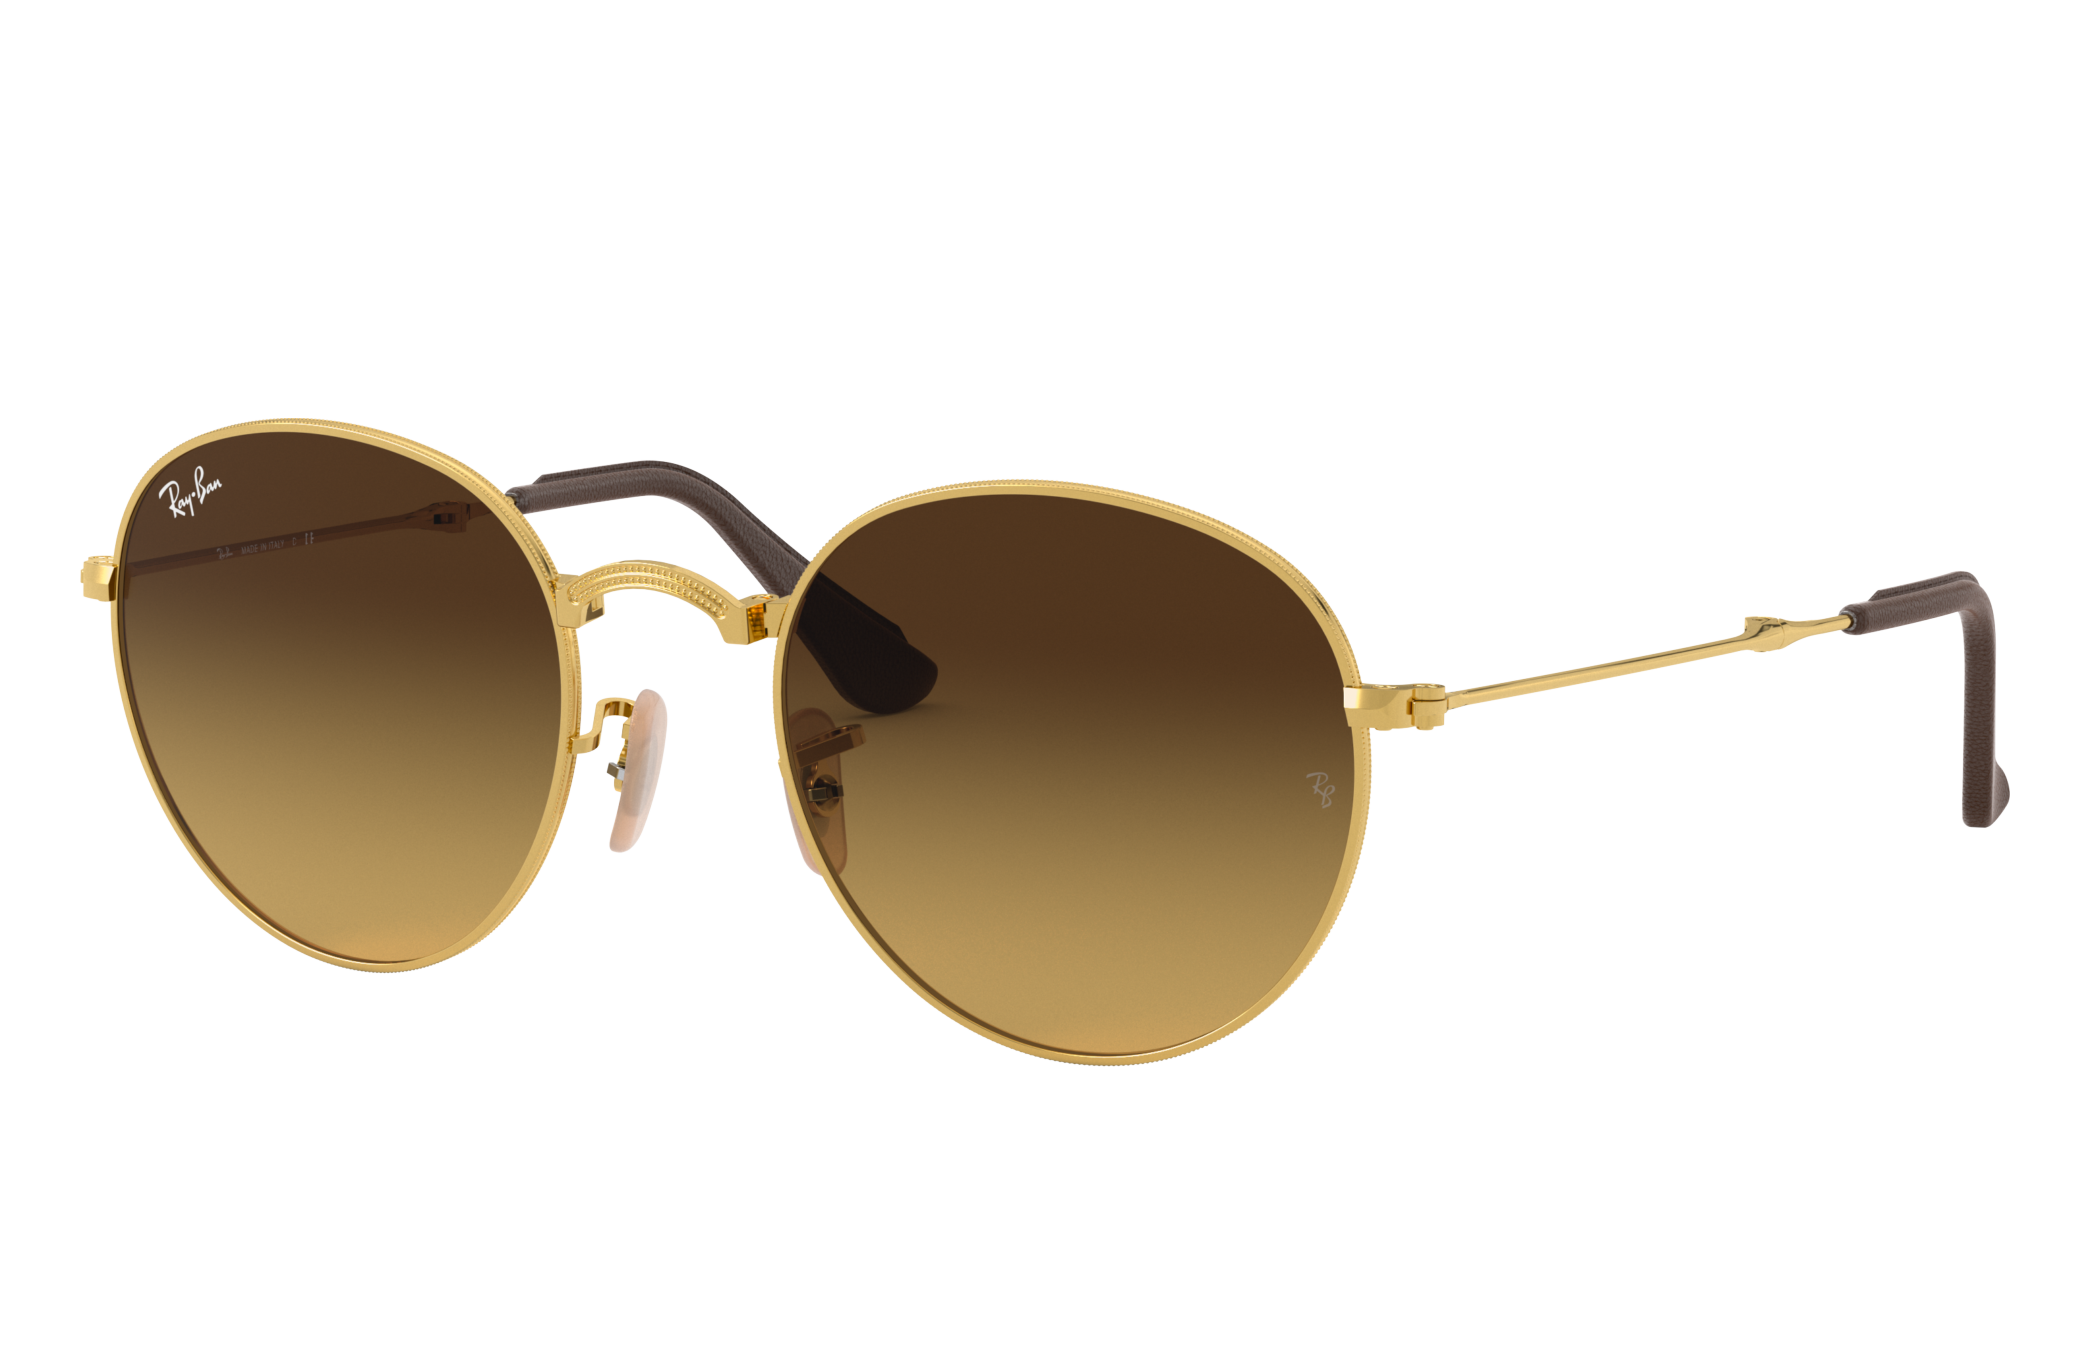 Ray-Ban Round Folding @collection Gold, Brown Lenses - RB3532